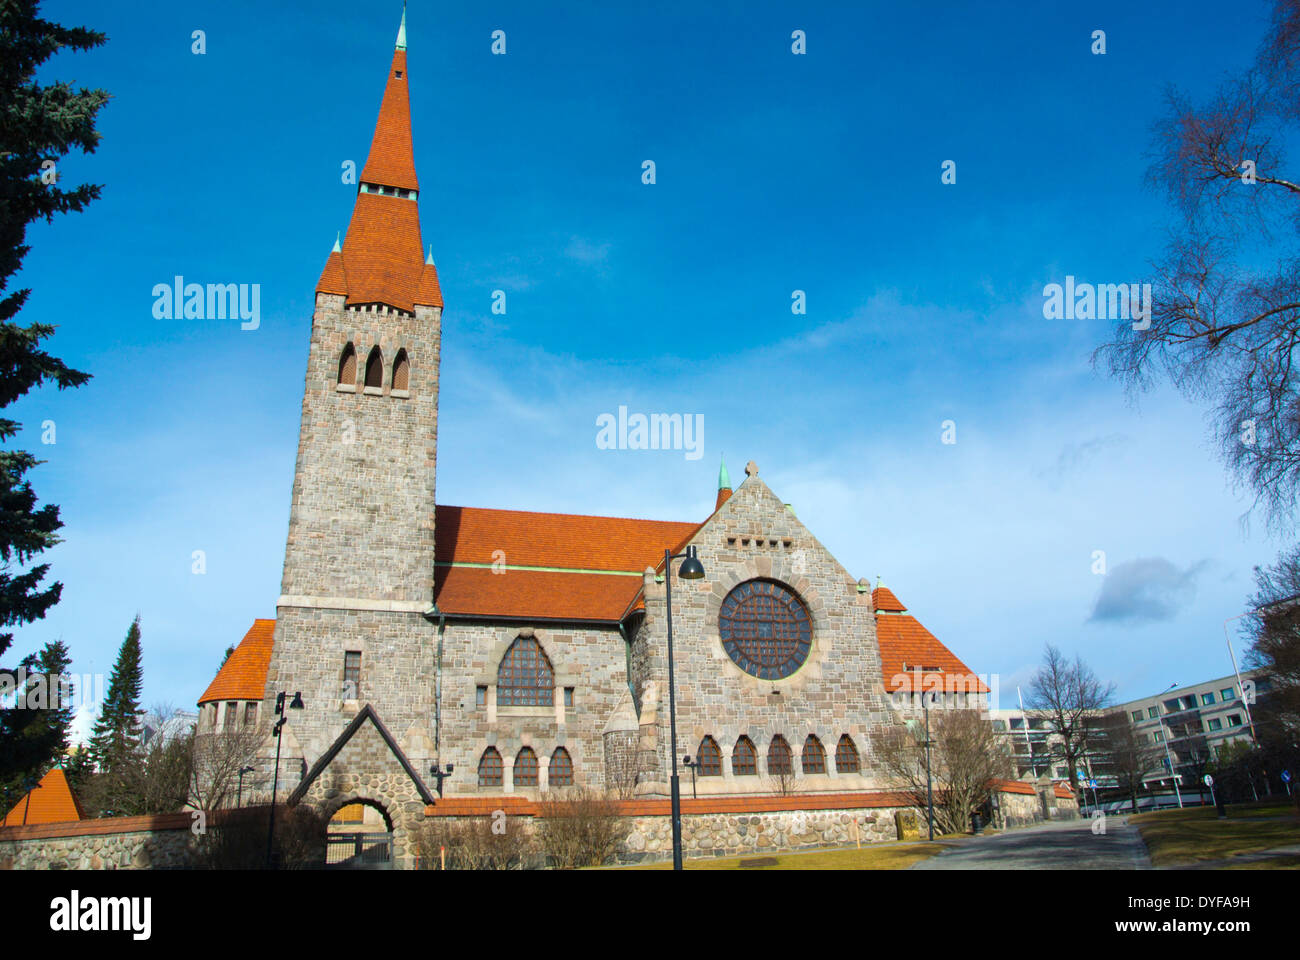 Tampereen tuomiokirkko, Tampere Cathedral (1907), Tampere, central Finland, Europe Stock Photo